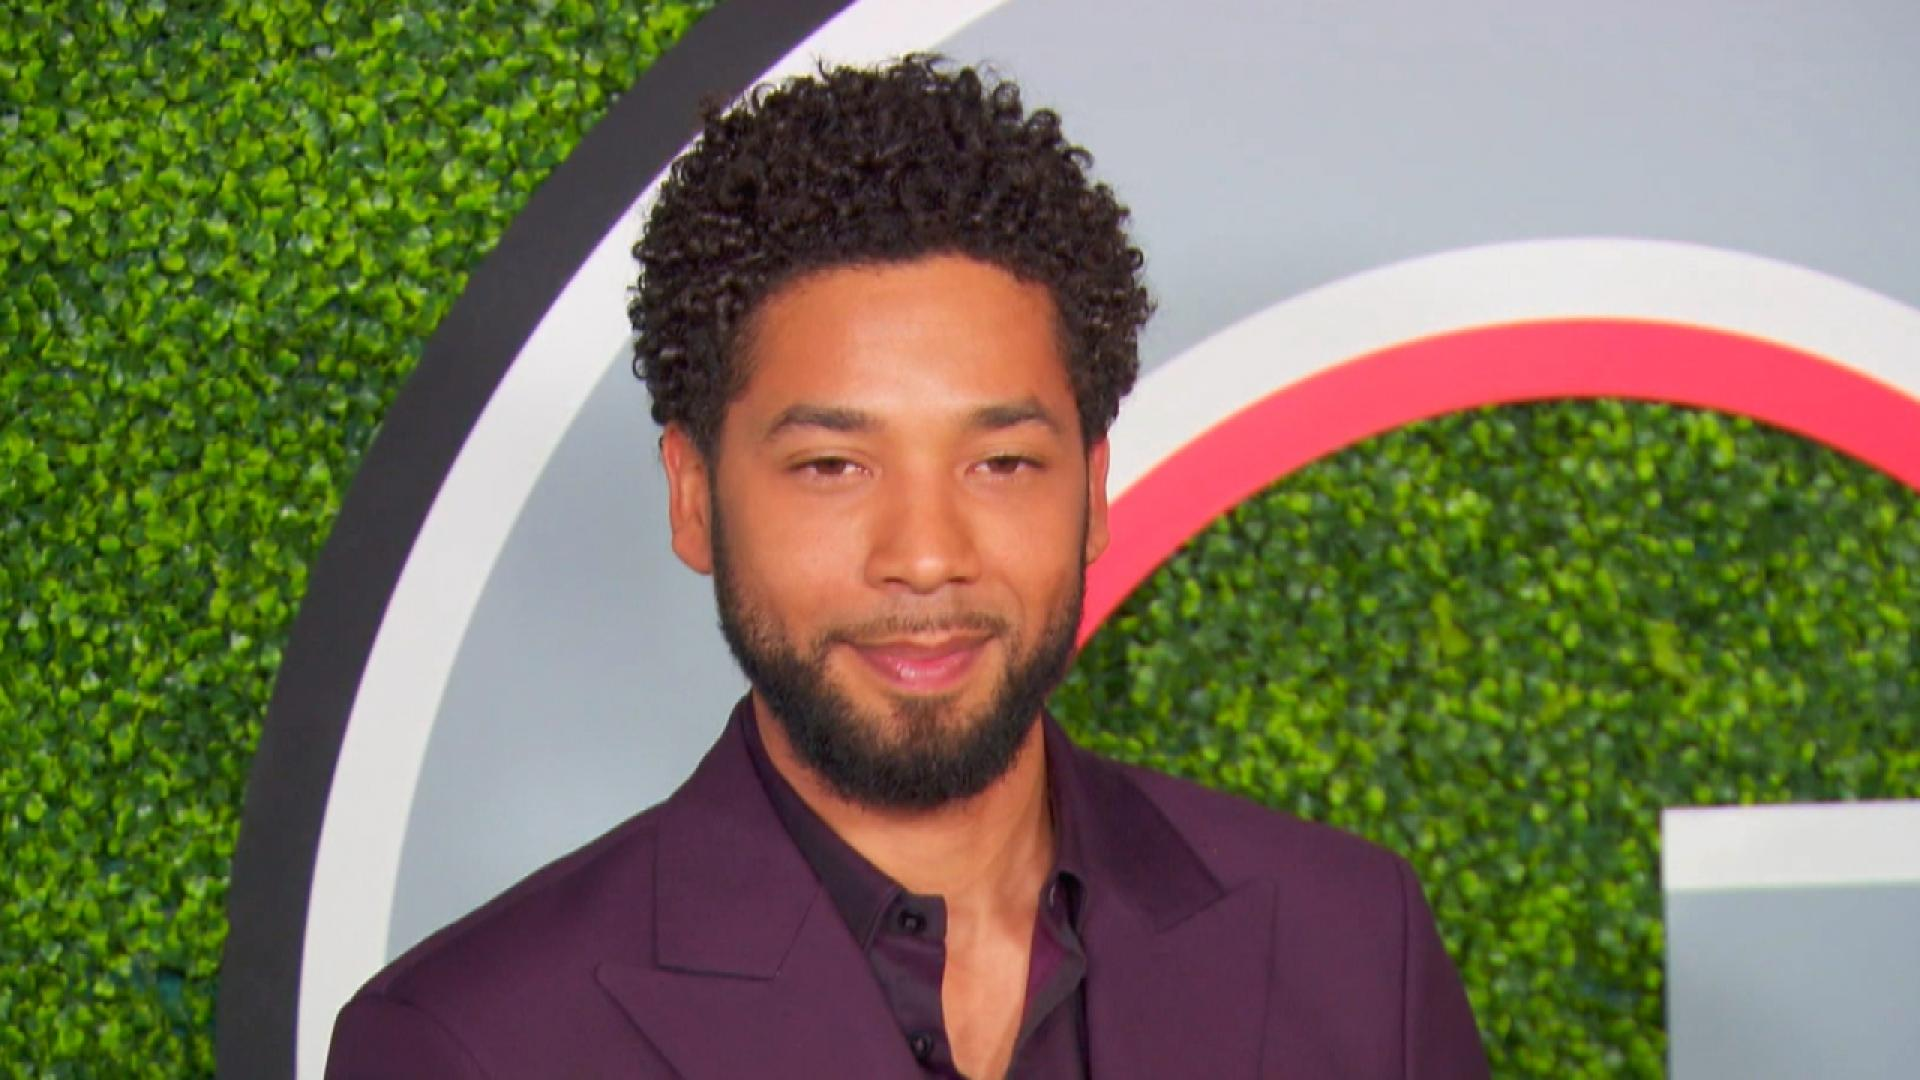 Jessie Smollett hopes justice will be served.